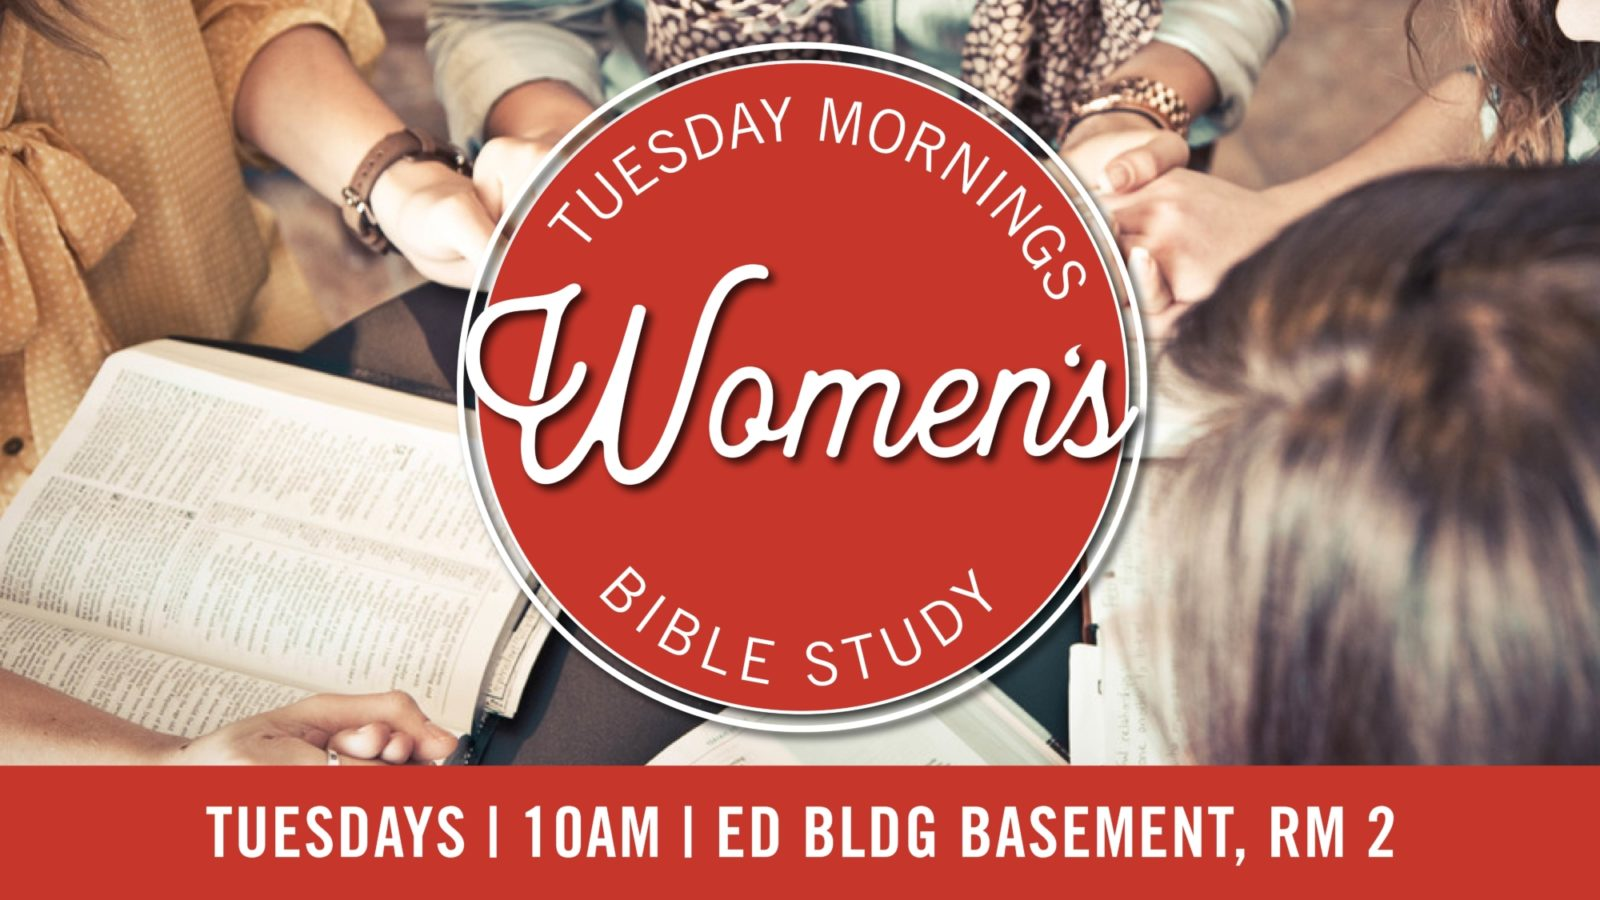 Tuesday Morning Women's Bible Study